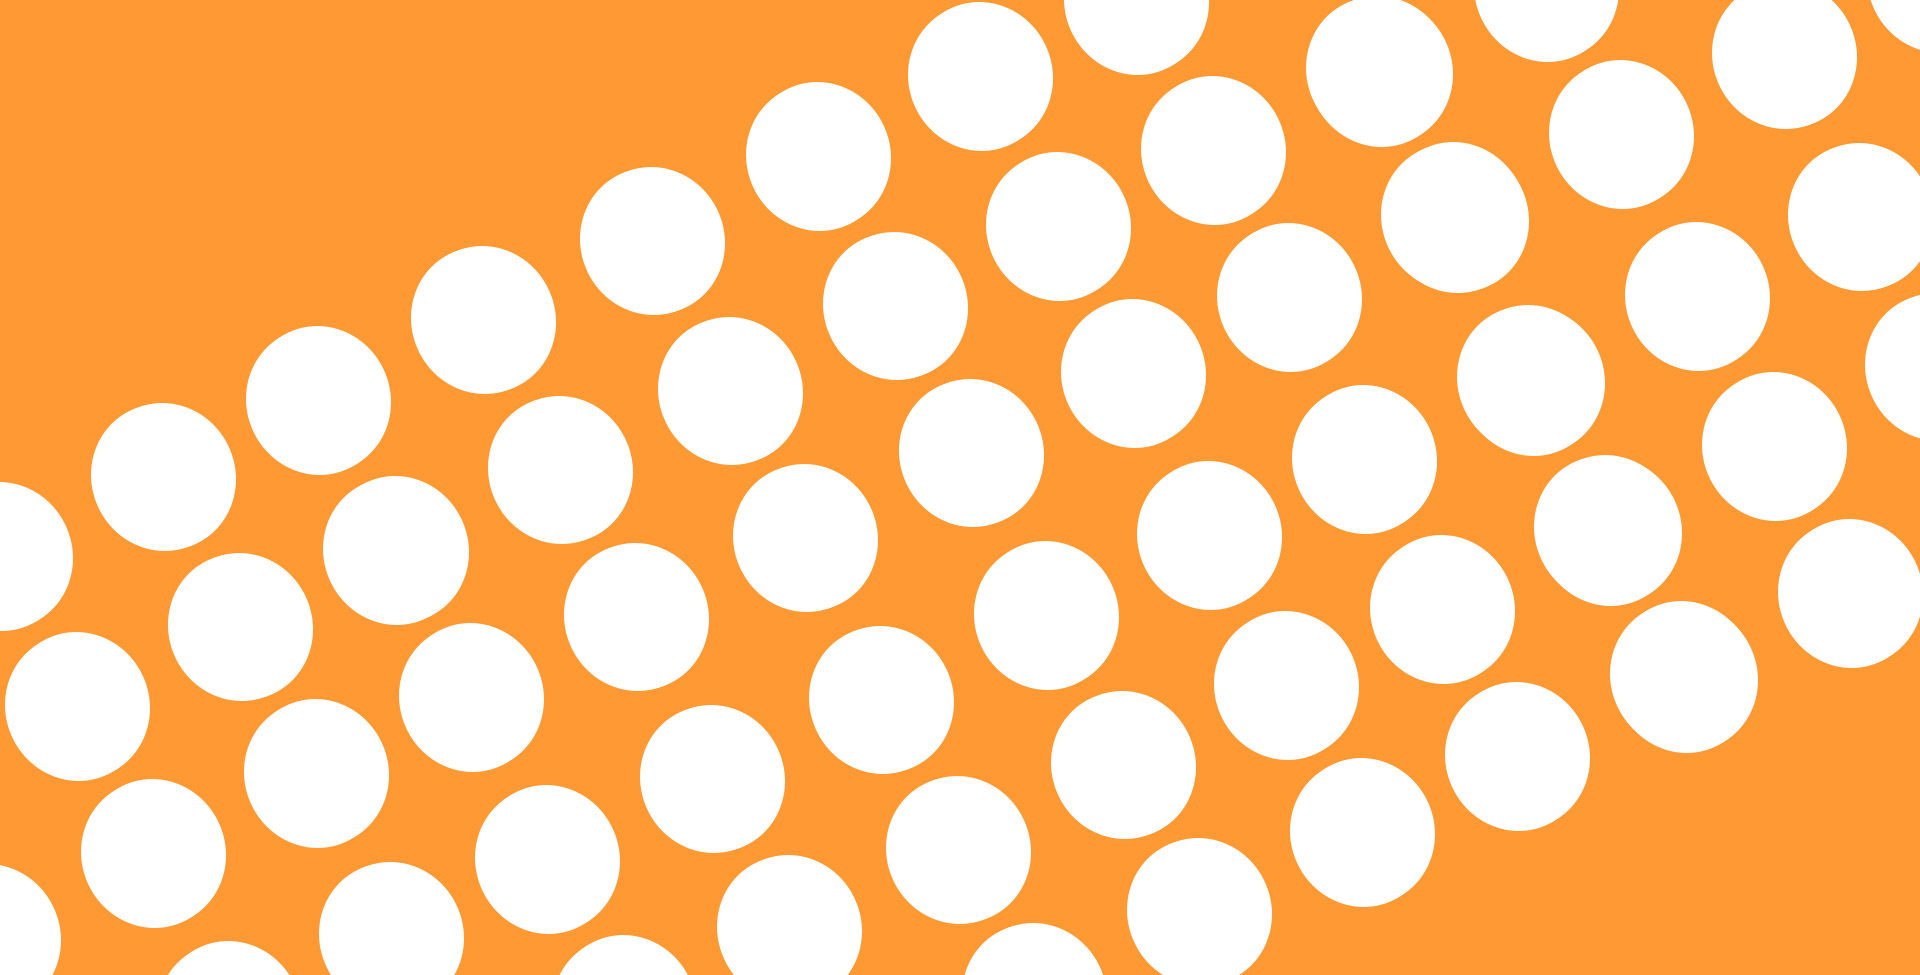 white dots on an orange background